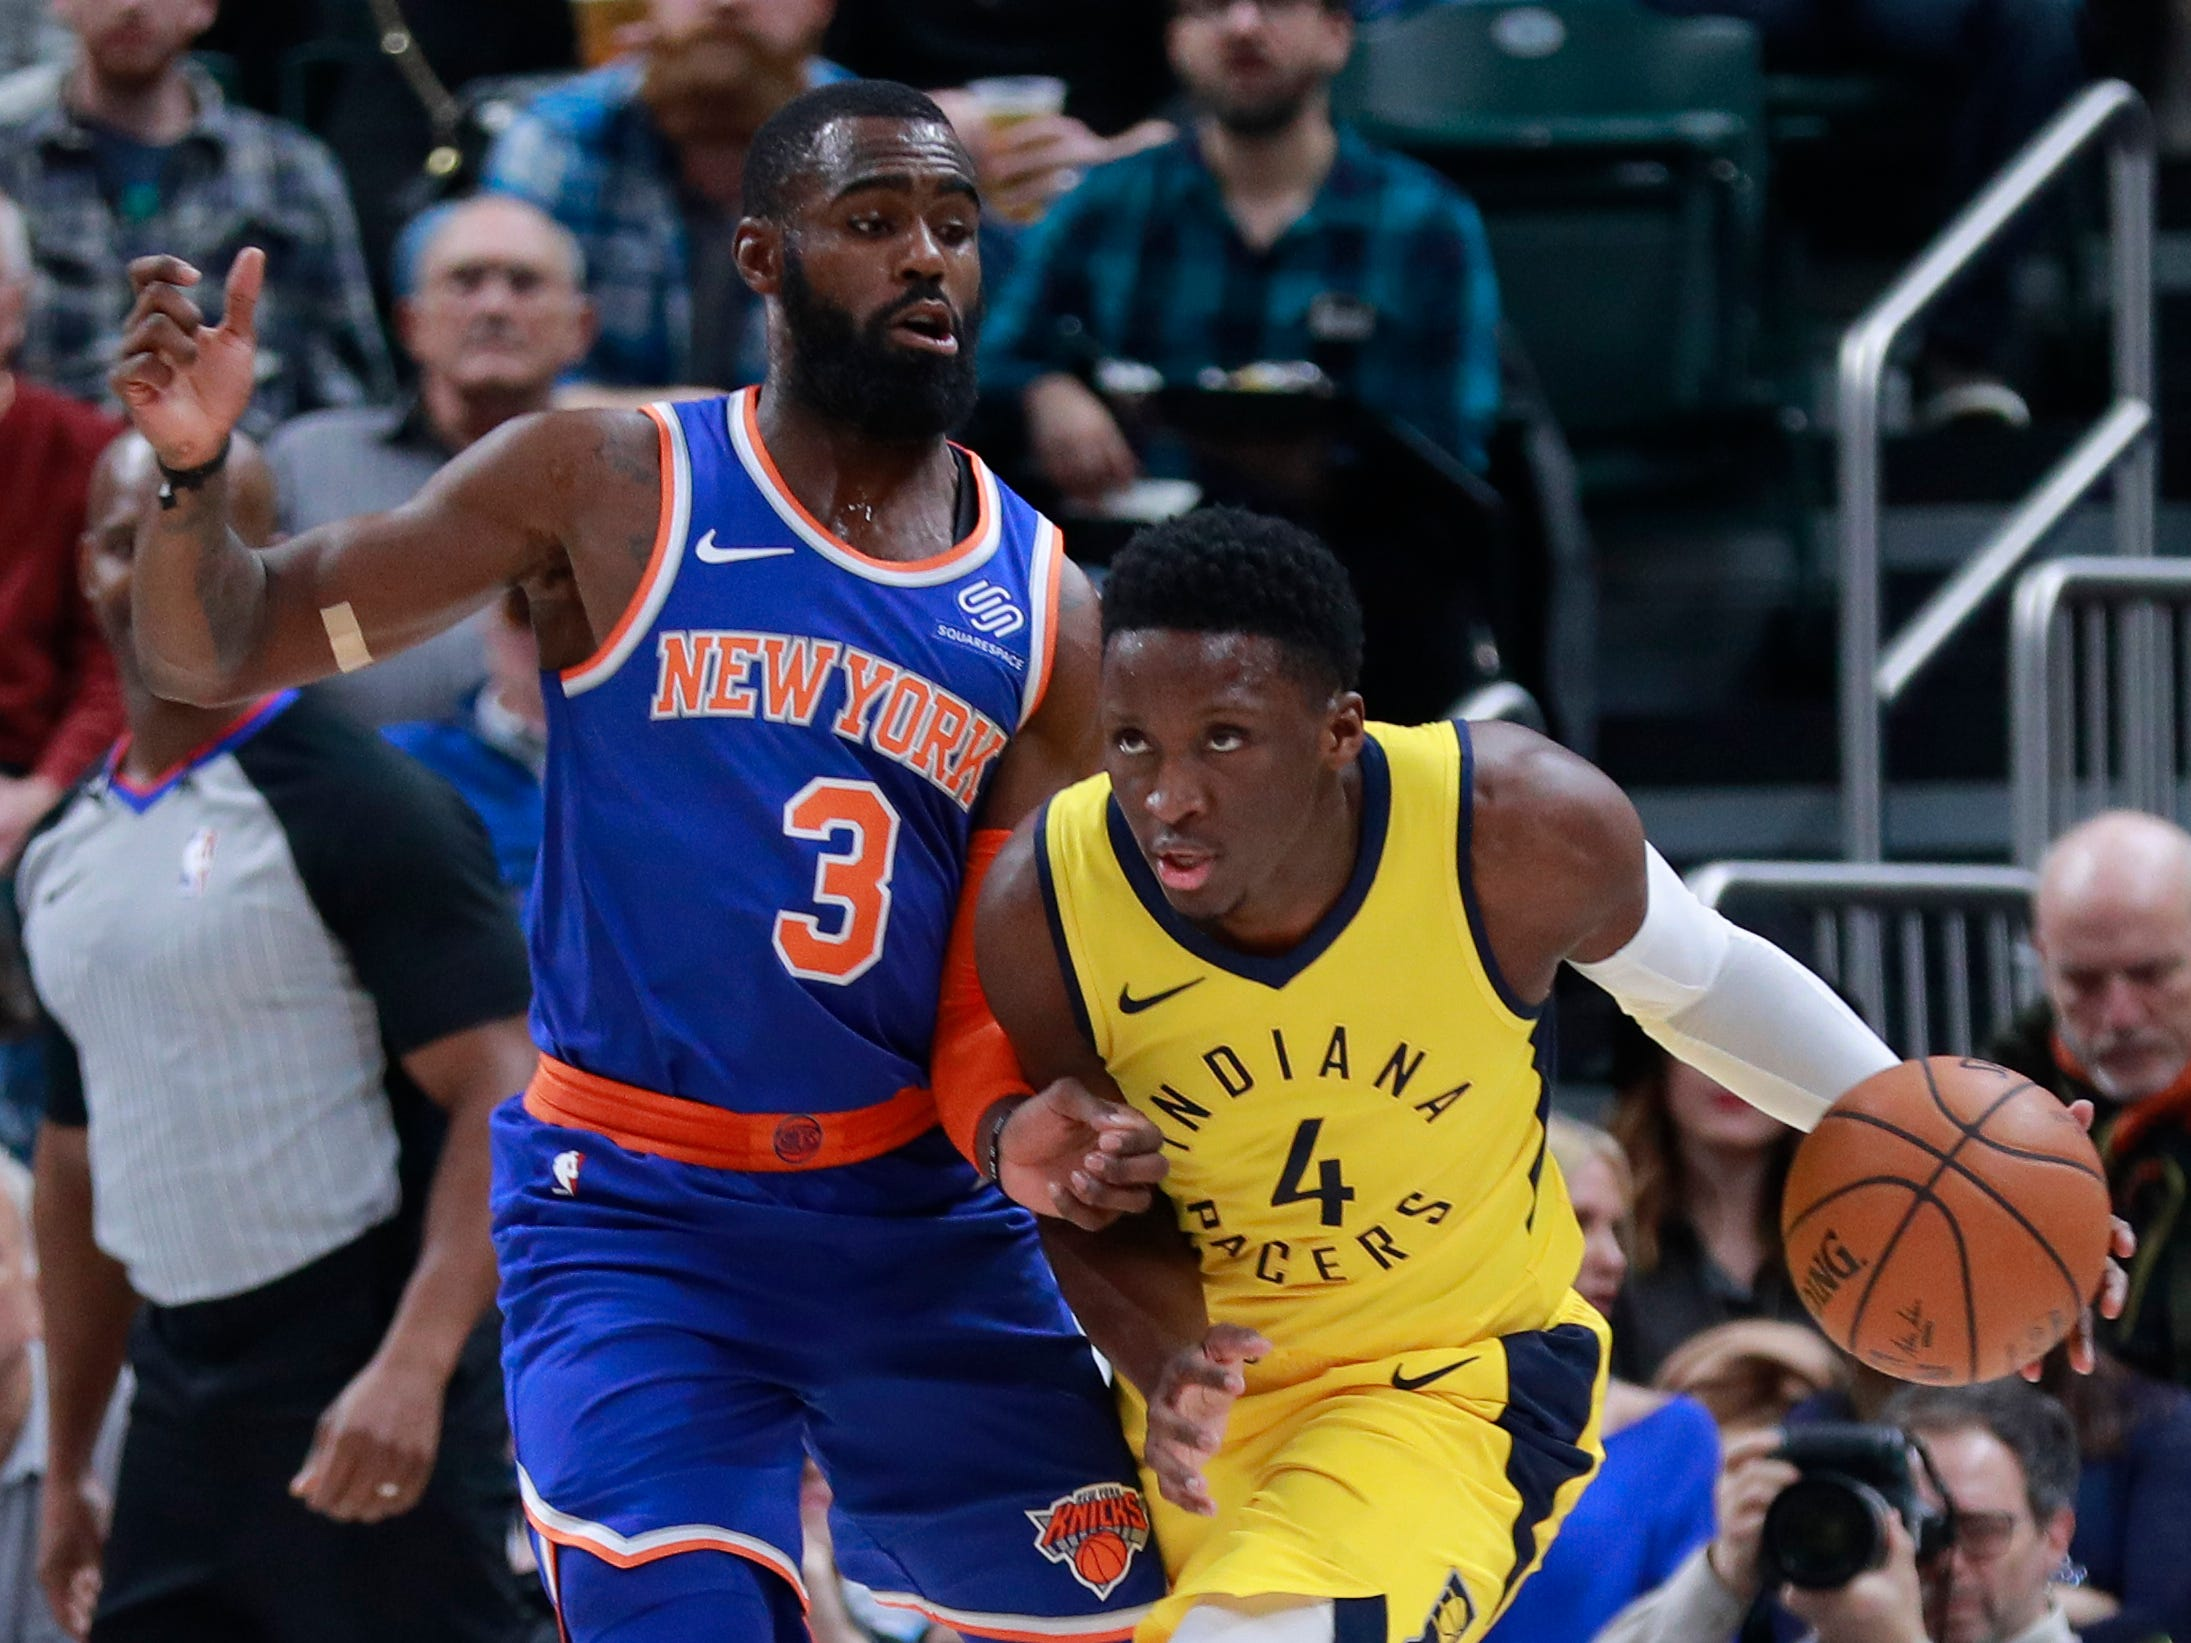 Indiana Pacers guard Victor Oladipo (4) dribbles the basketball defended by New York Knicks guard Tim Hardaway Jr. during the first half of an NBA basketball game, Sunday, Dec. 16, 2018, in Indianapolis.